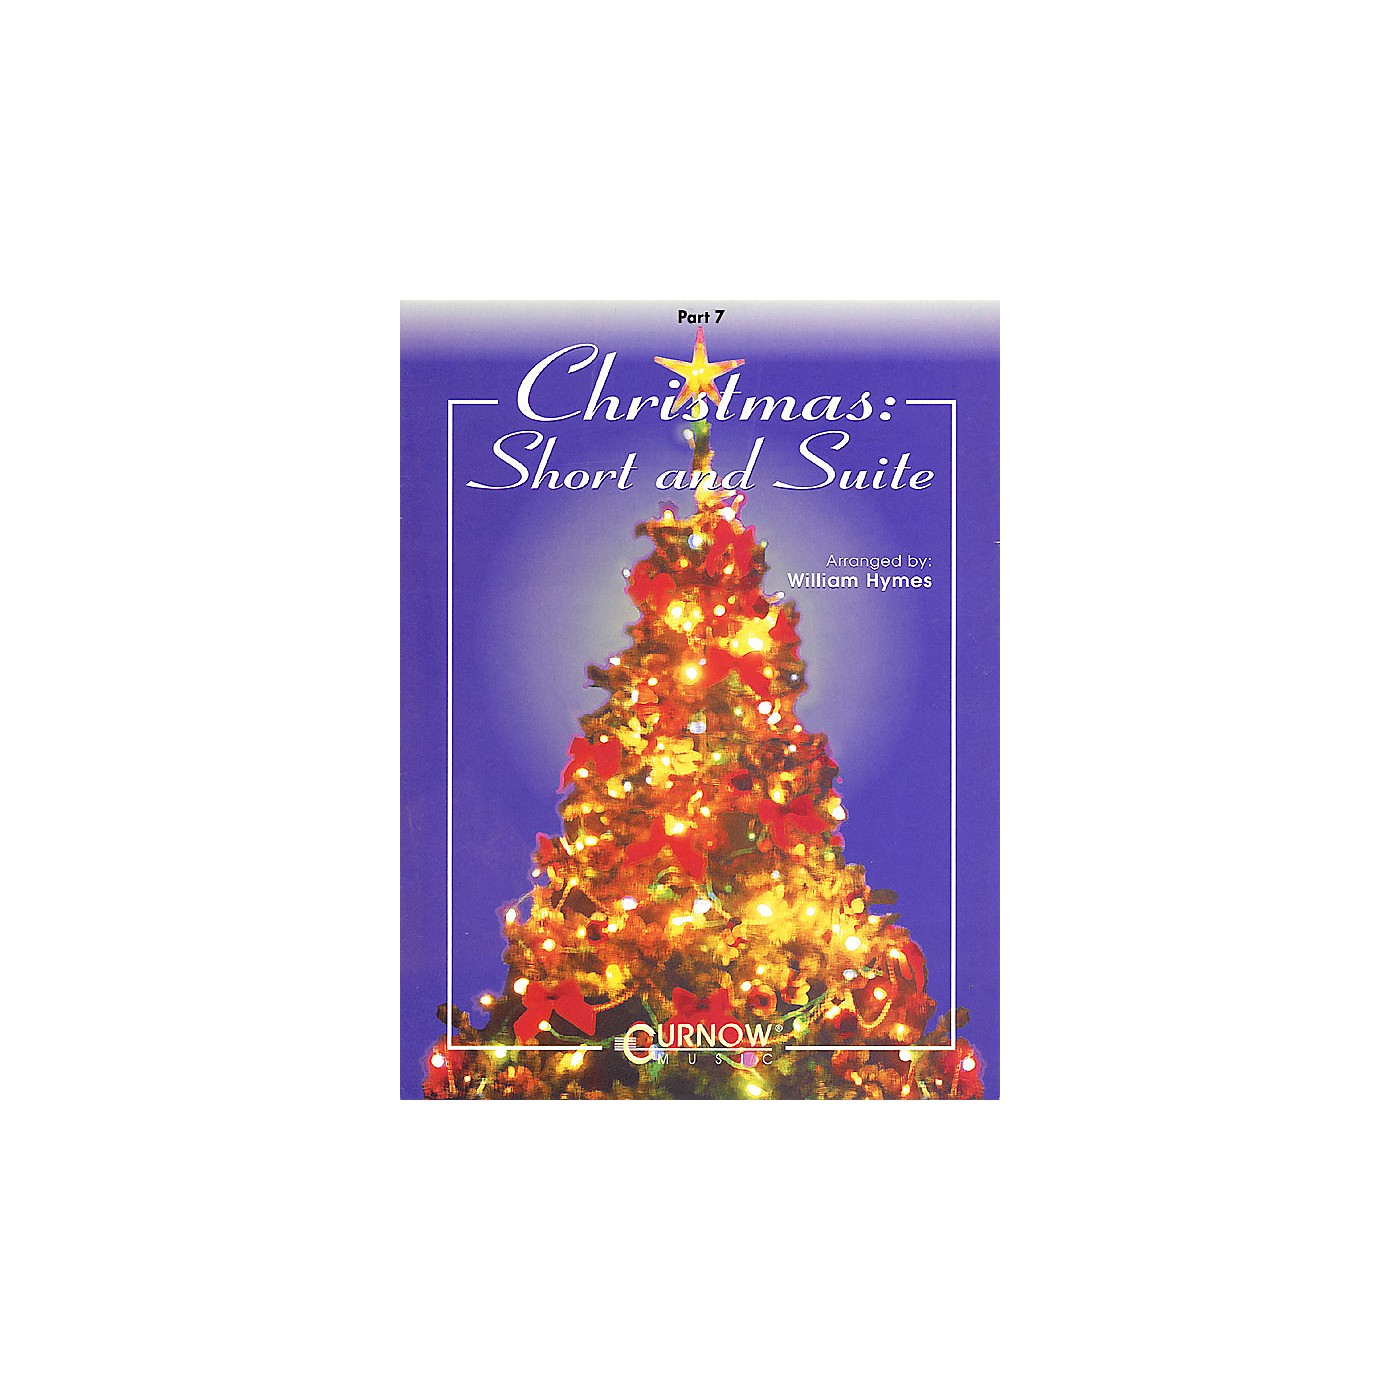 Curnow Music Christmas: Short and Suite (Percussion (opt.)) Concert Band Level 2-4 Arranged by William Himes thumbnail